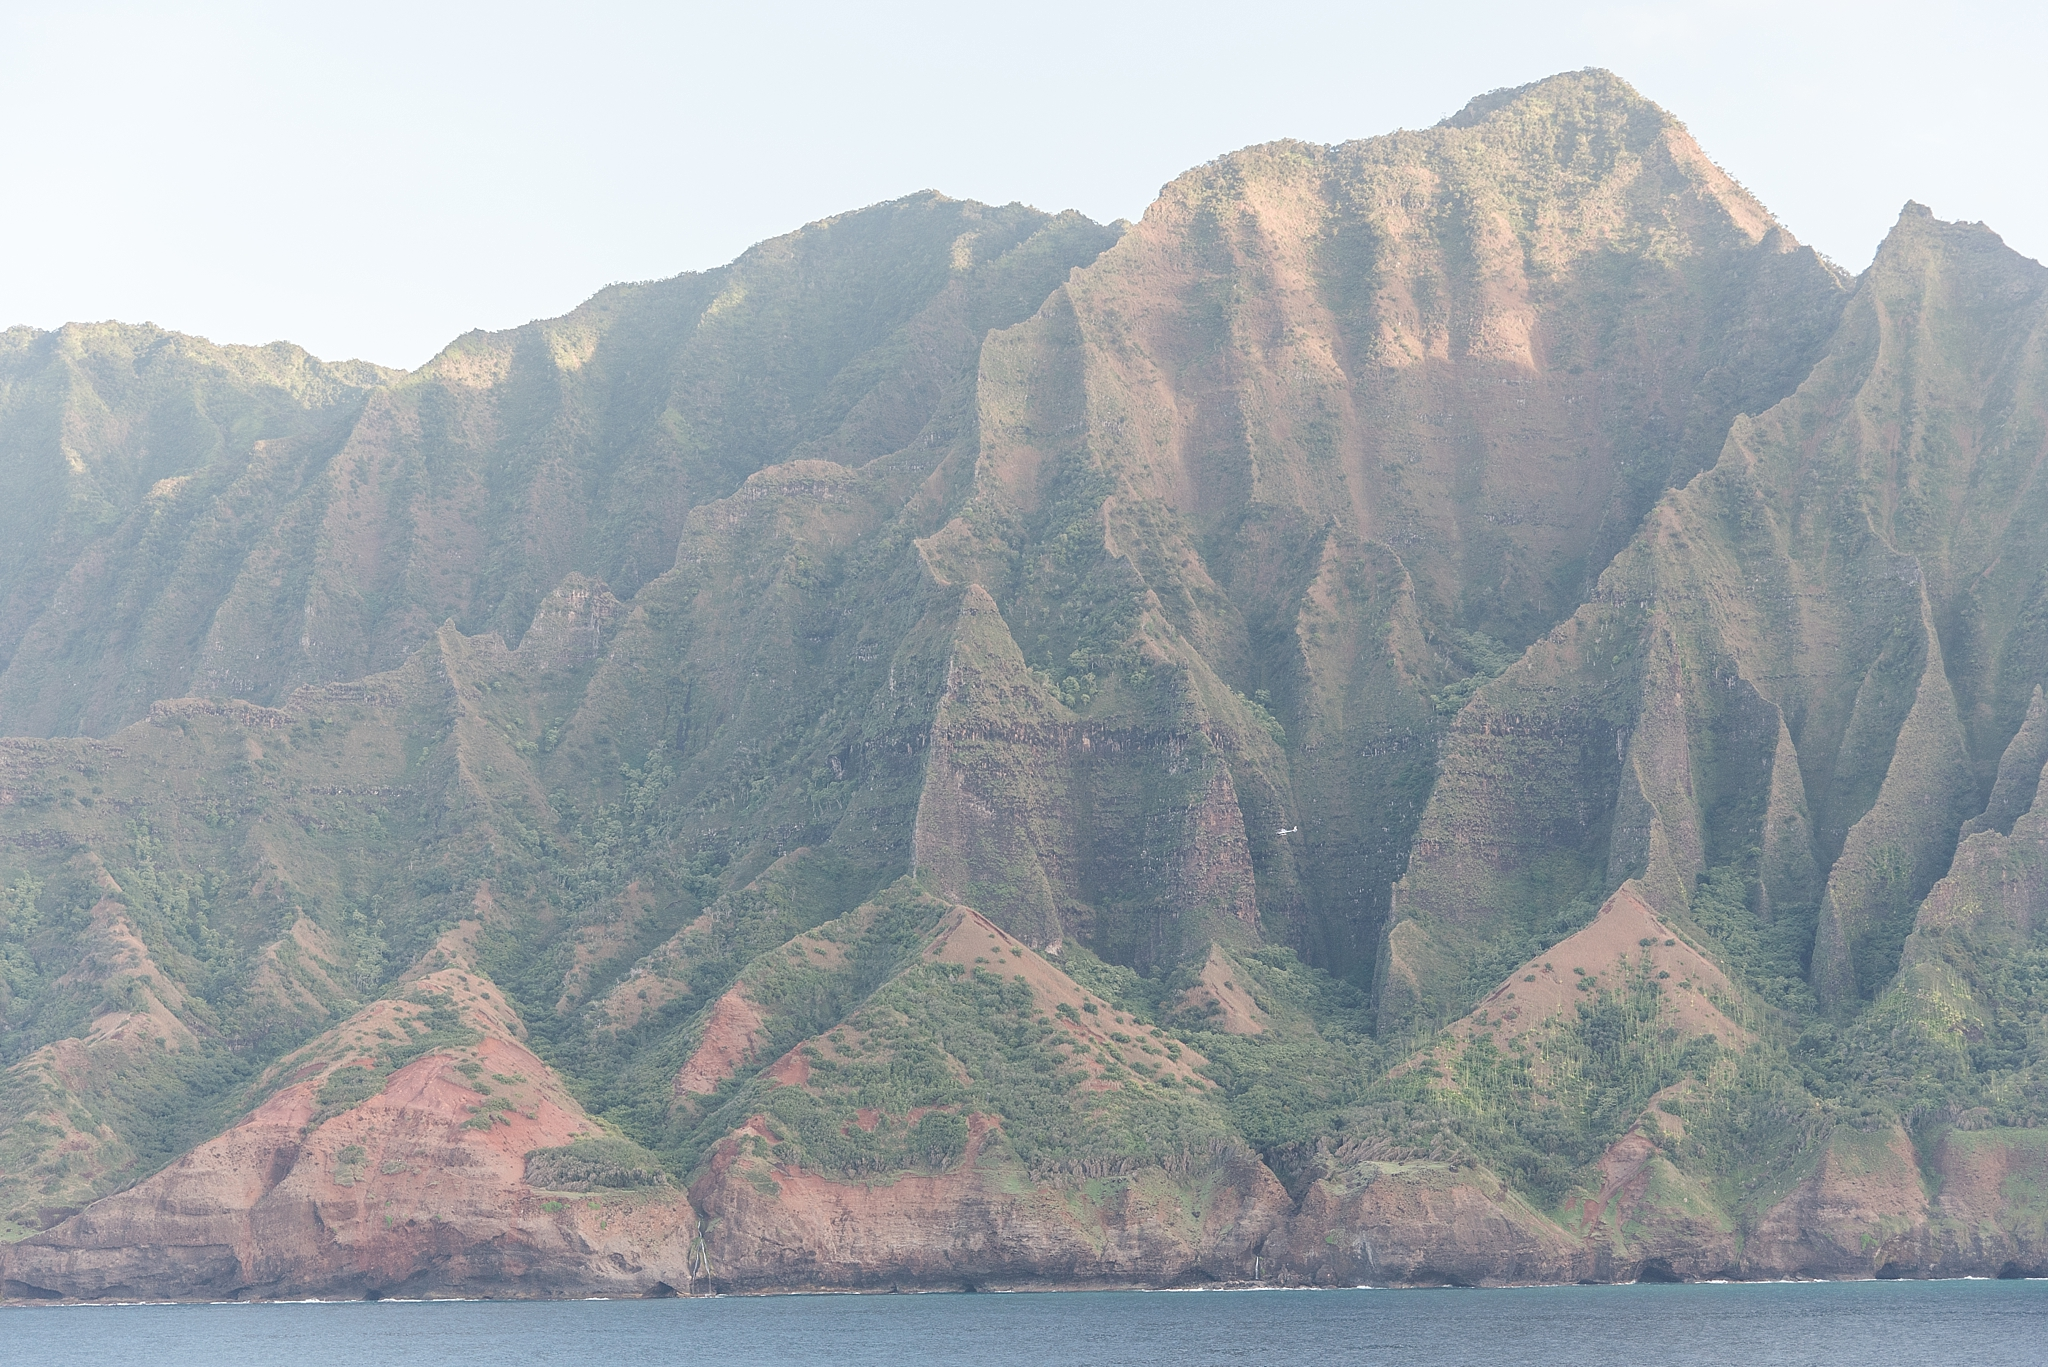 Gorgeous view of Na Pali Coast from the deck of the Pride of America.